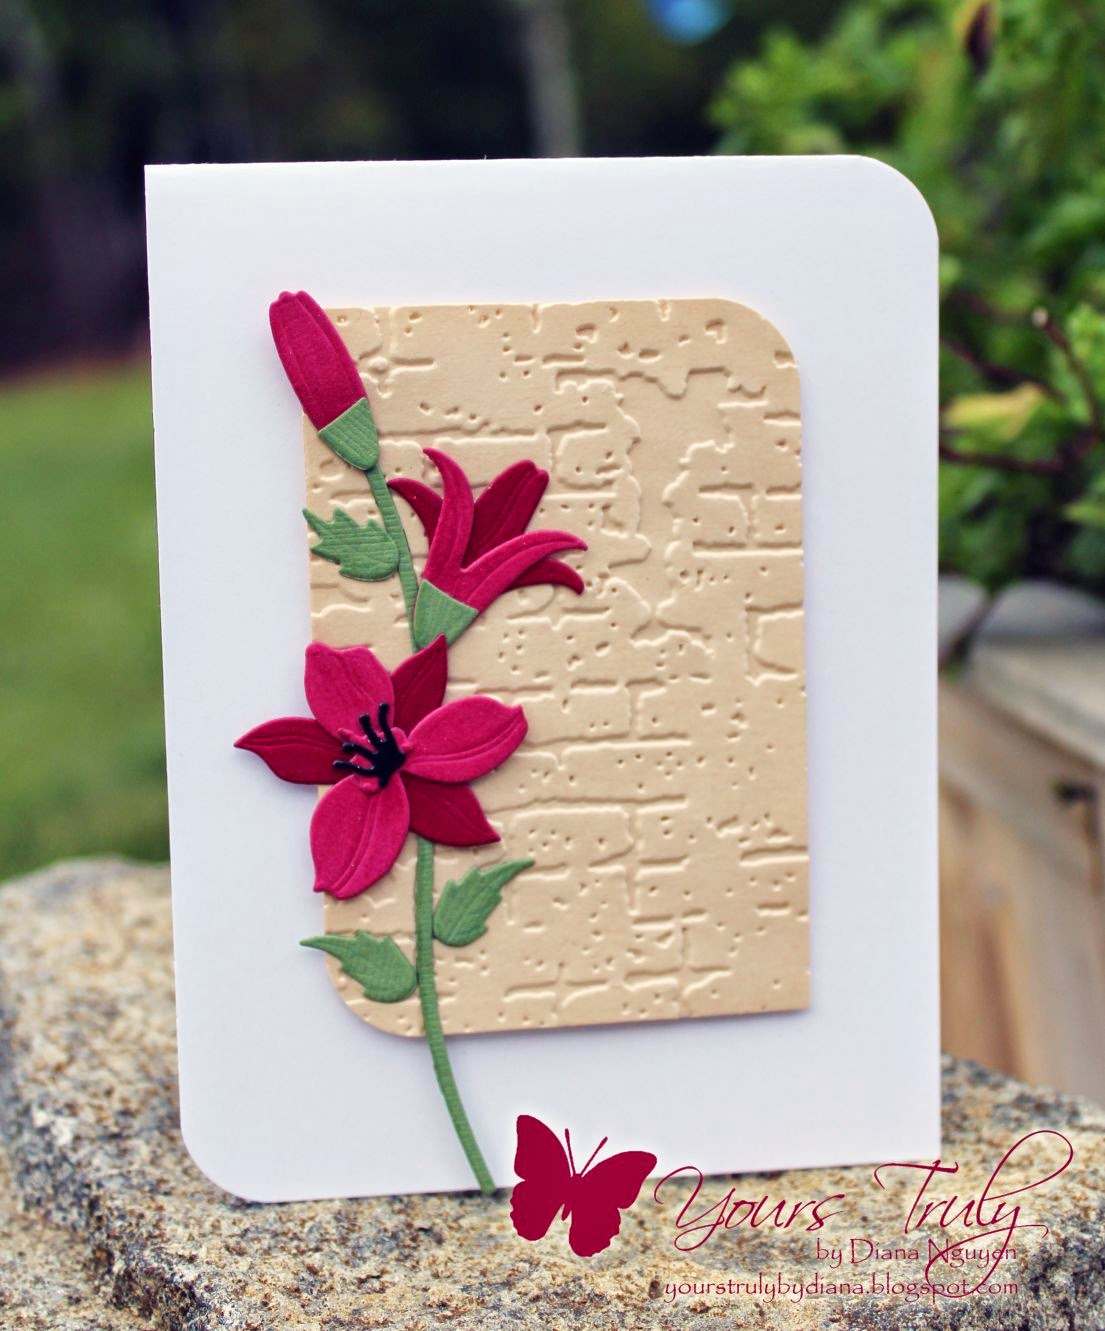 Diana Nguyen, My Favorite Things Lily, CAS, floral card